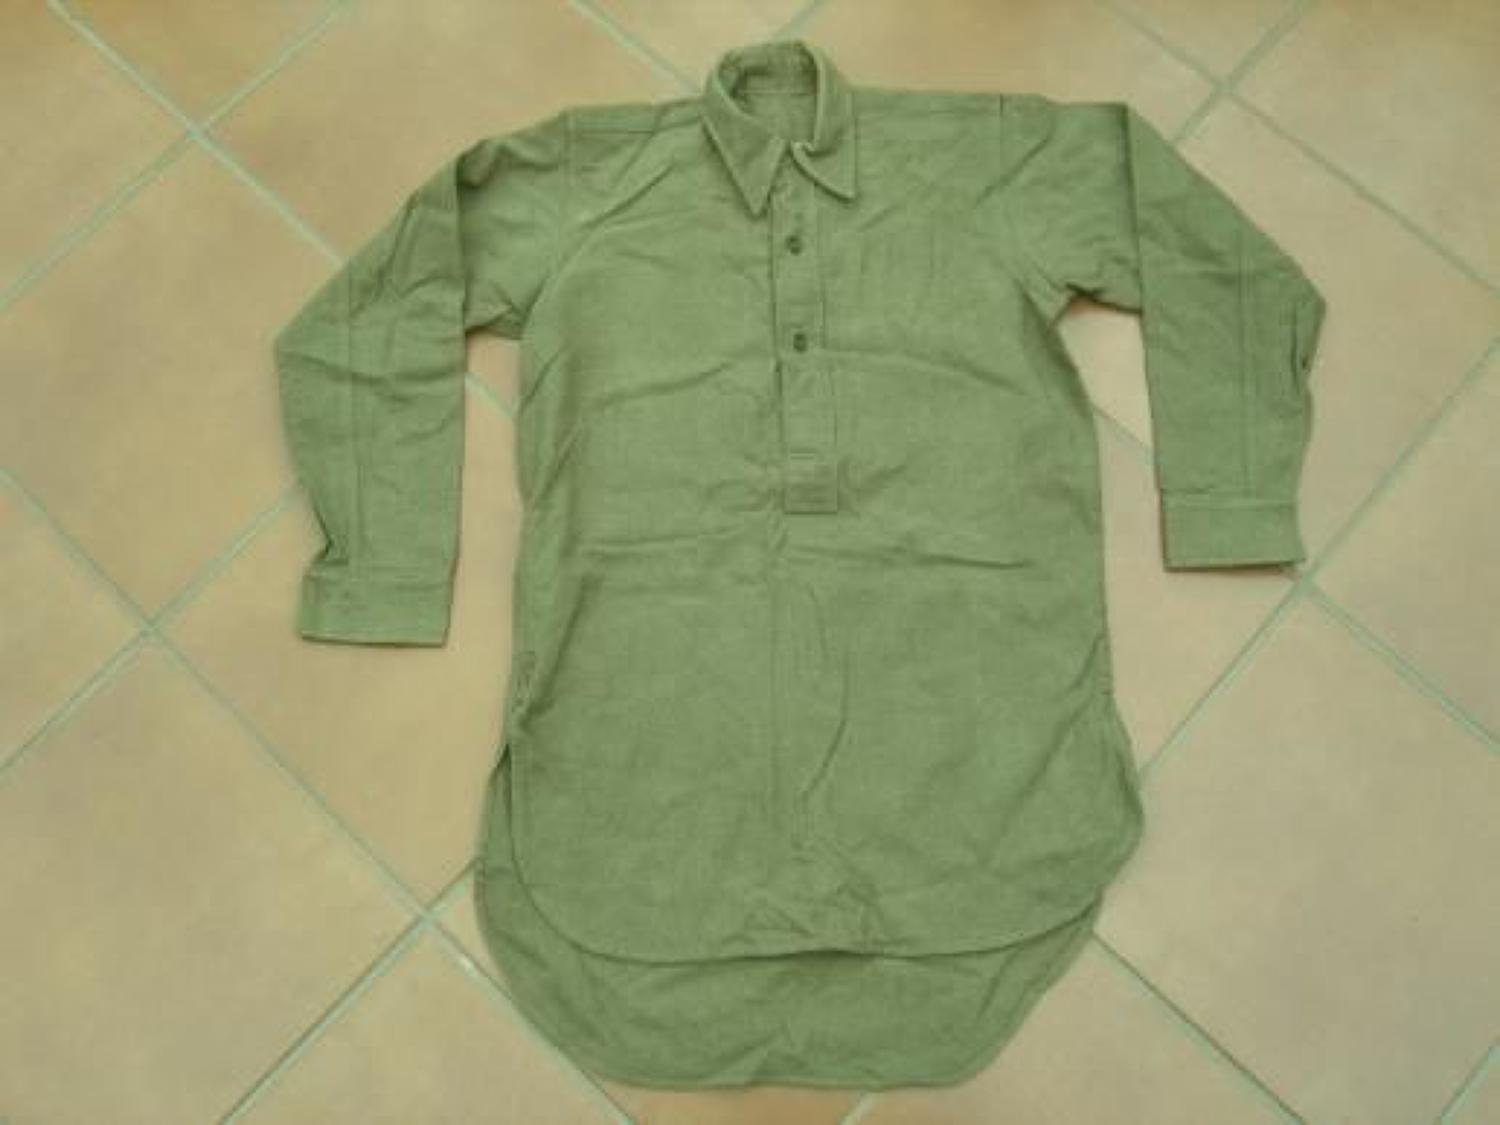 WW2 unissued Other Ranks service dress khaki shirt.